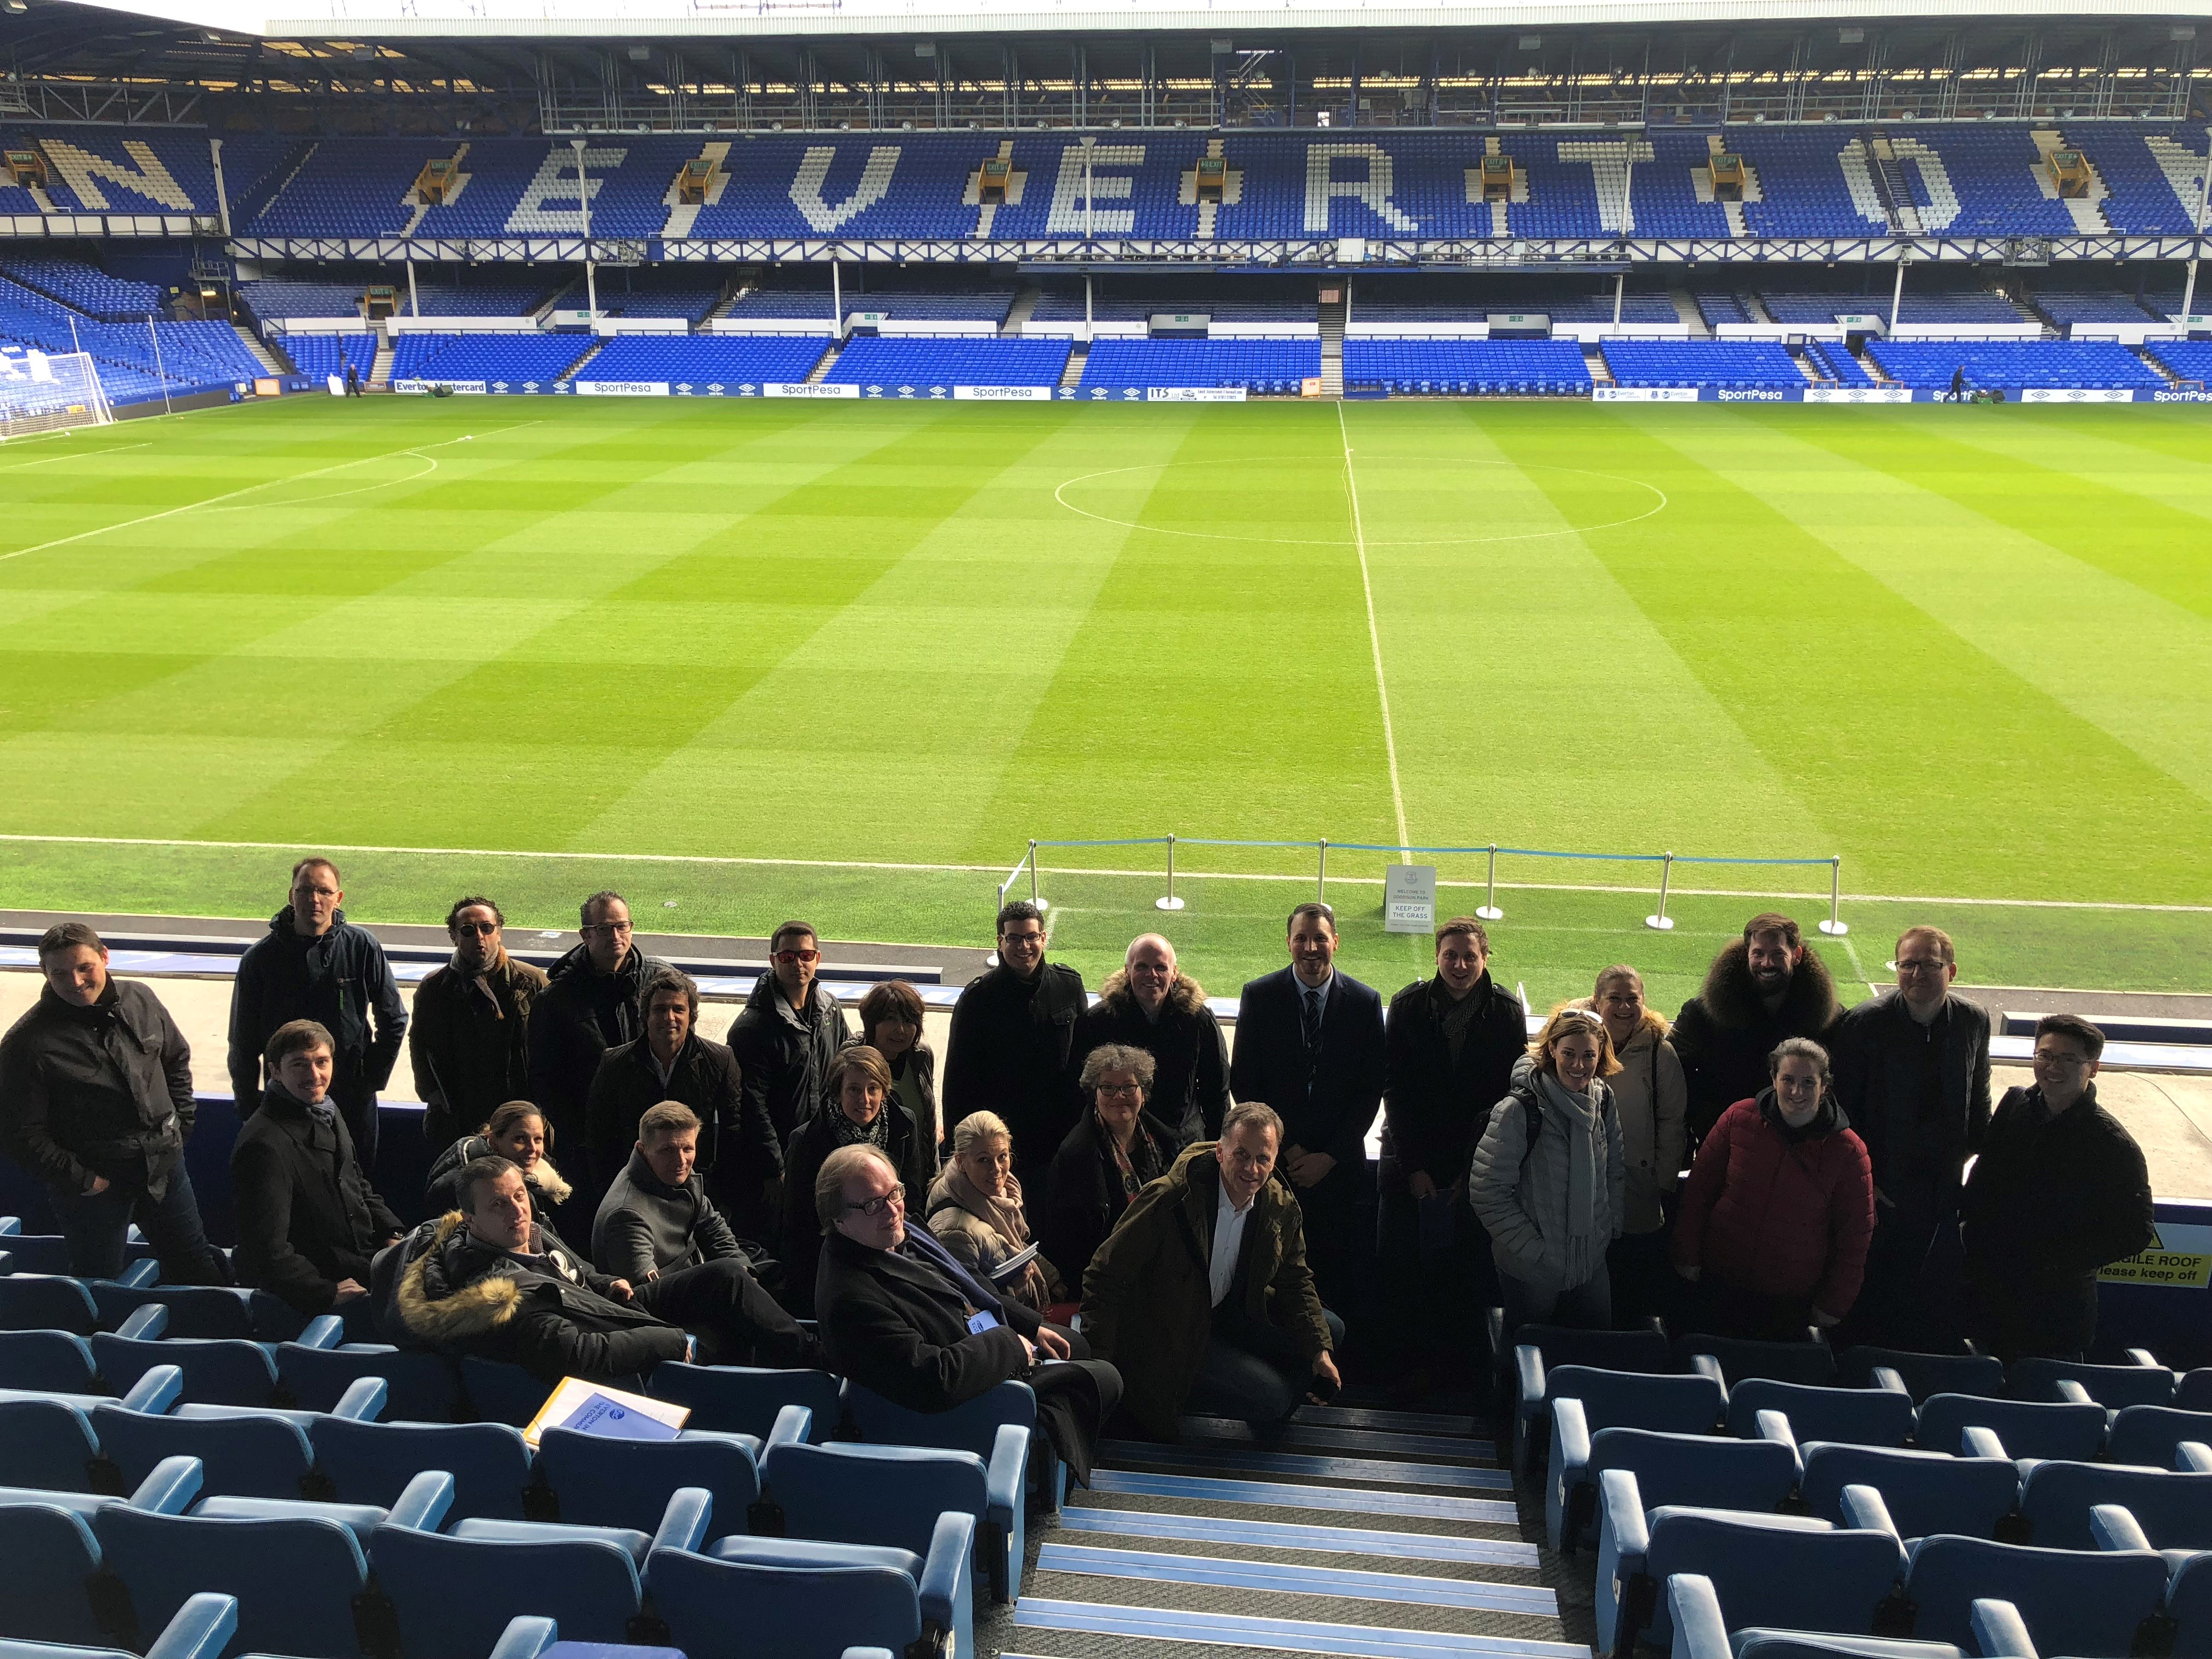 Workshop participants standing in the Everton stadium